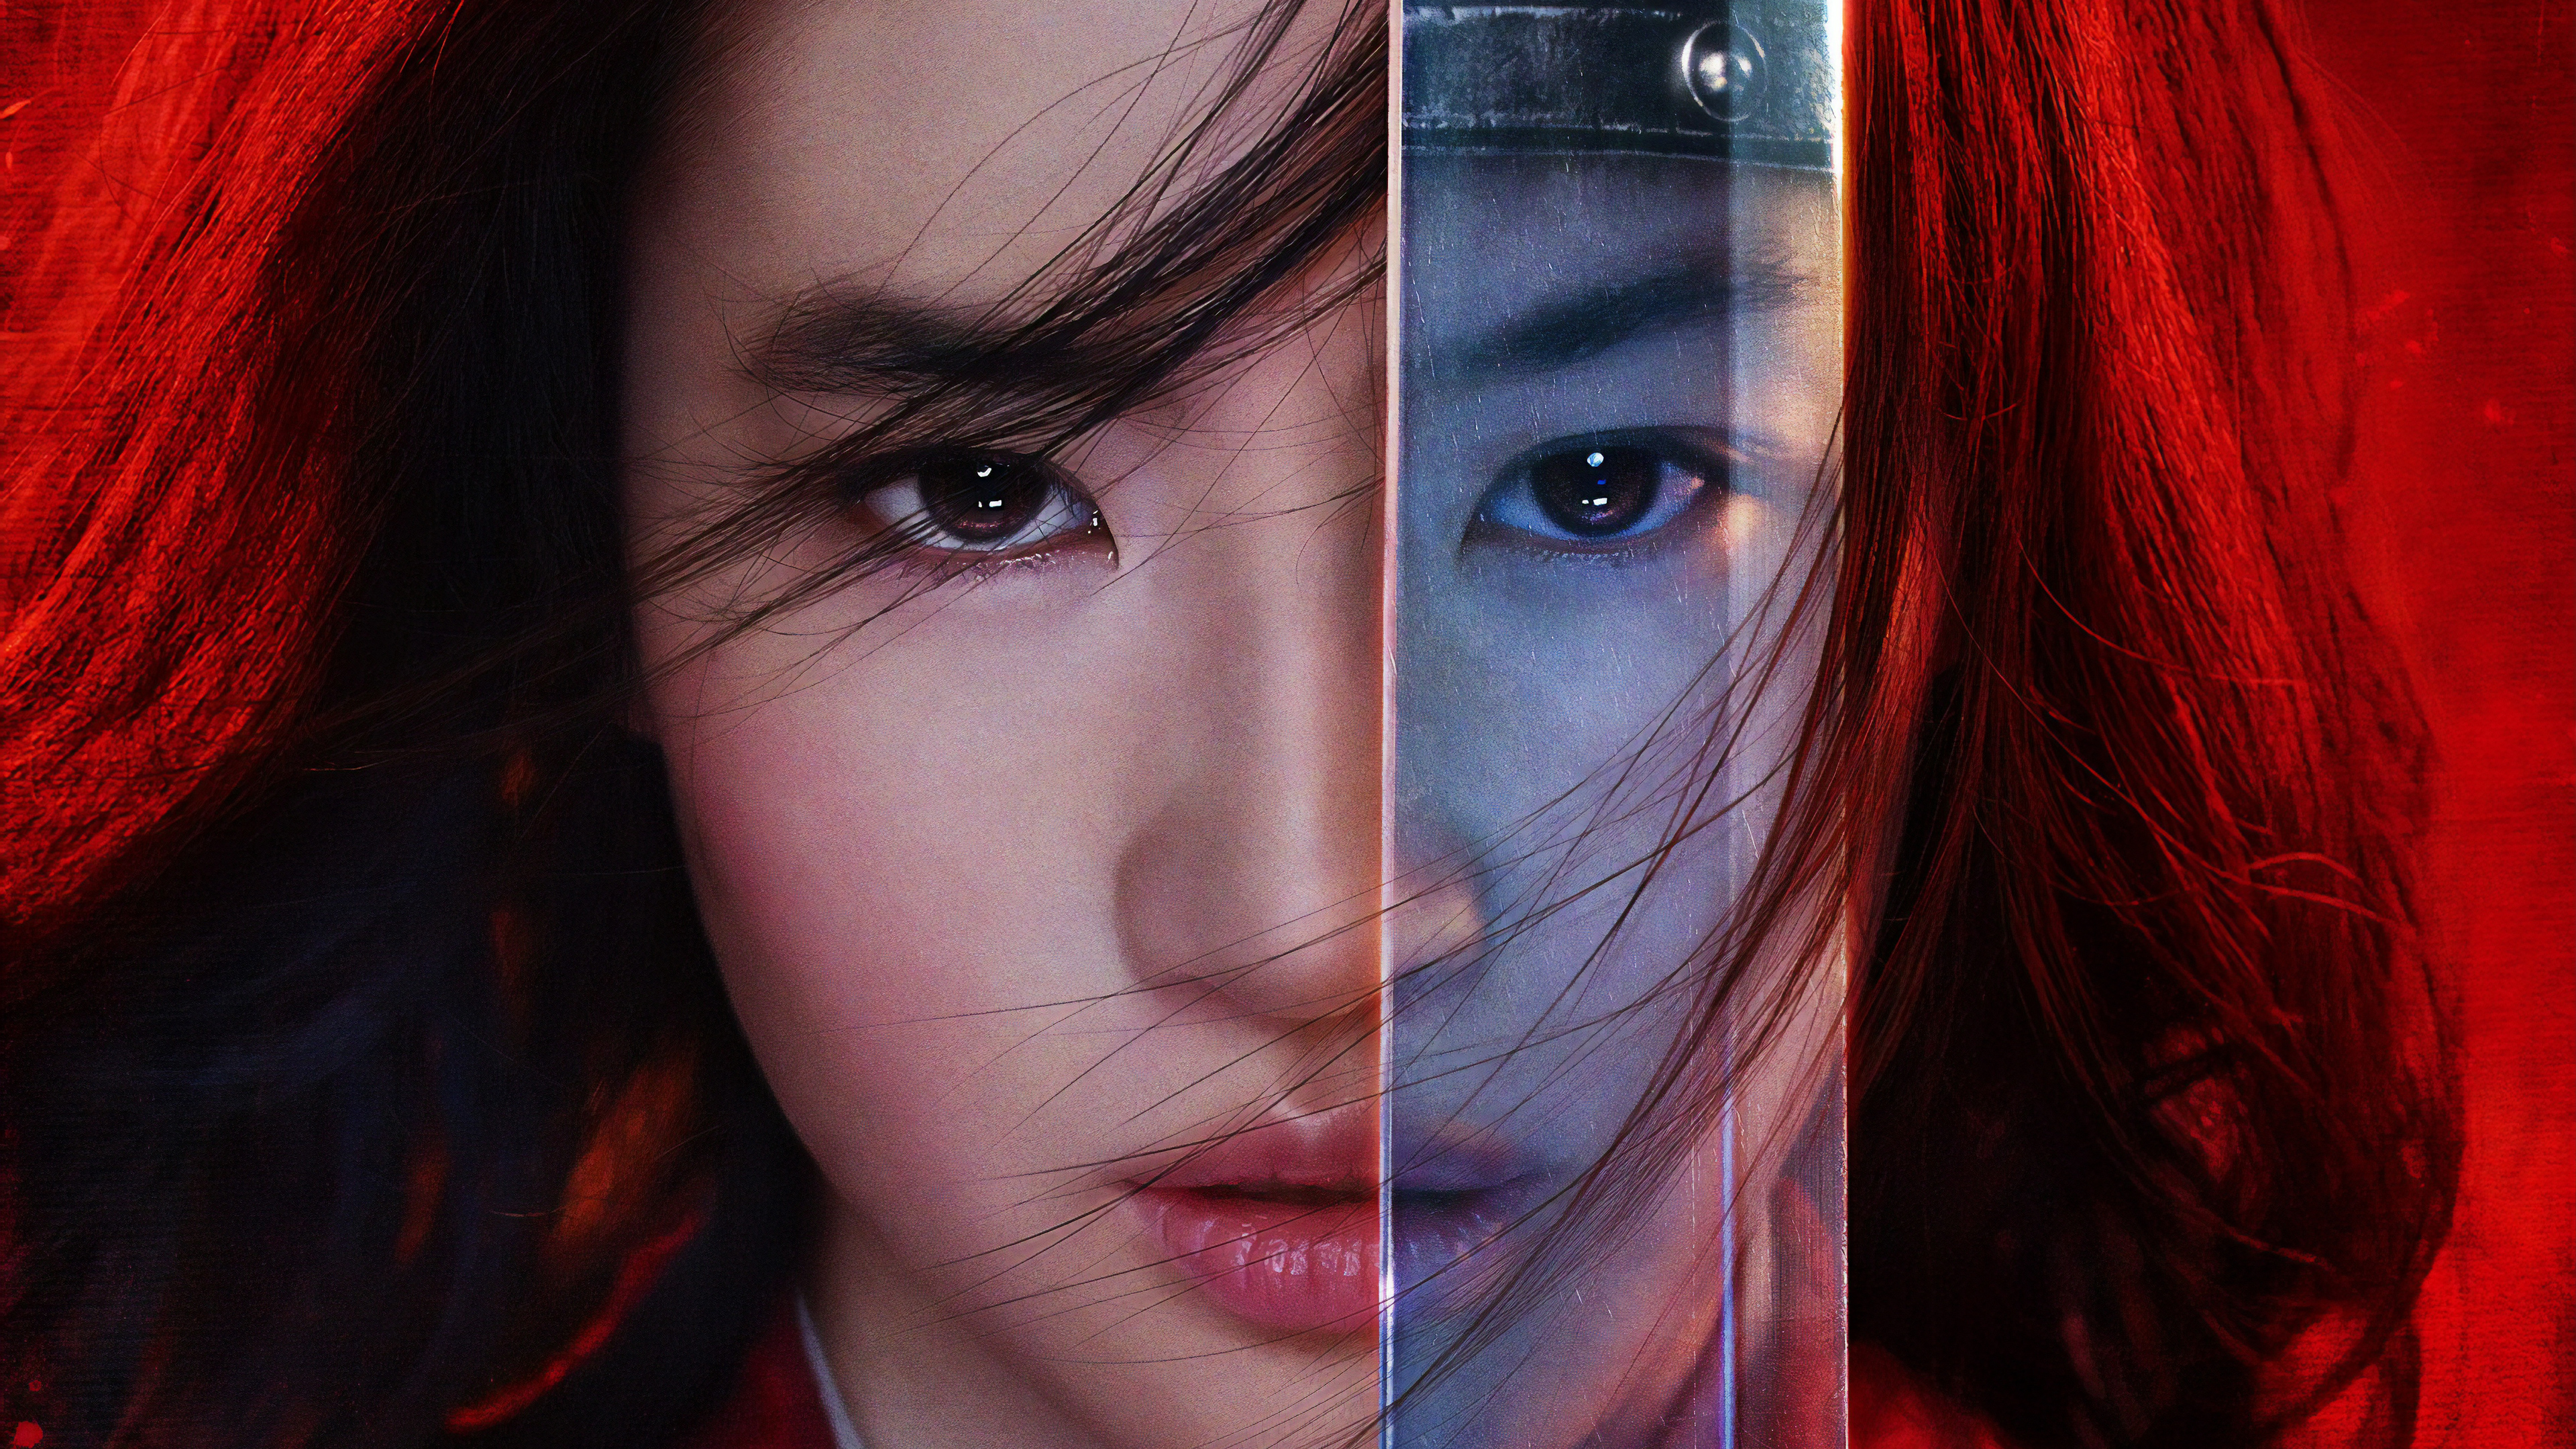 mulan 2020 1563220803 - Mulan 2020 - mulan wallpapers, movies wallpapers, liu yifei wallpapers, hd-wallpapers, disney wallpapers, 4k-wallpapers, 2020 movies wallpapers